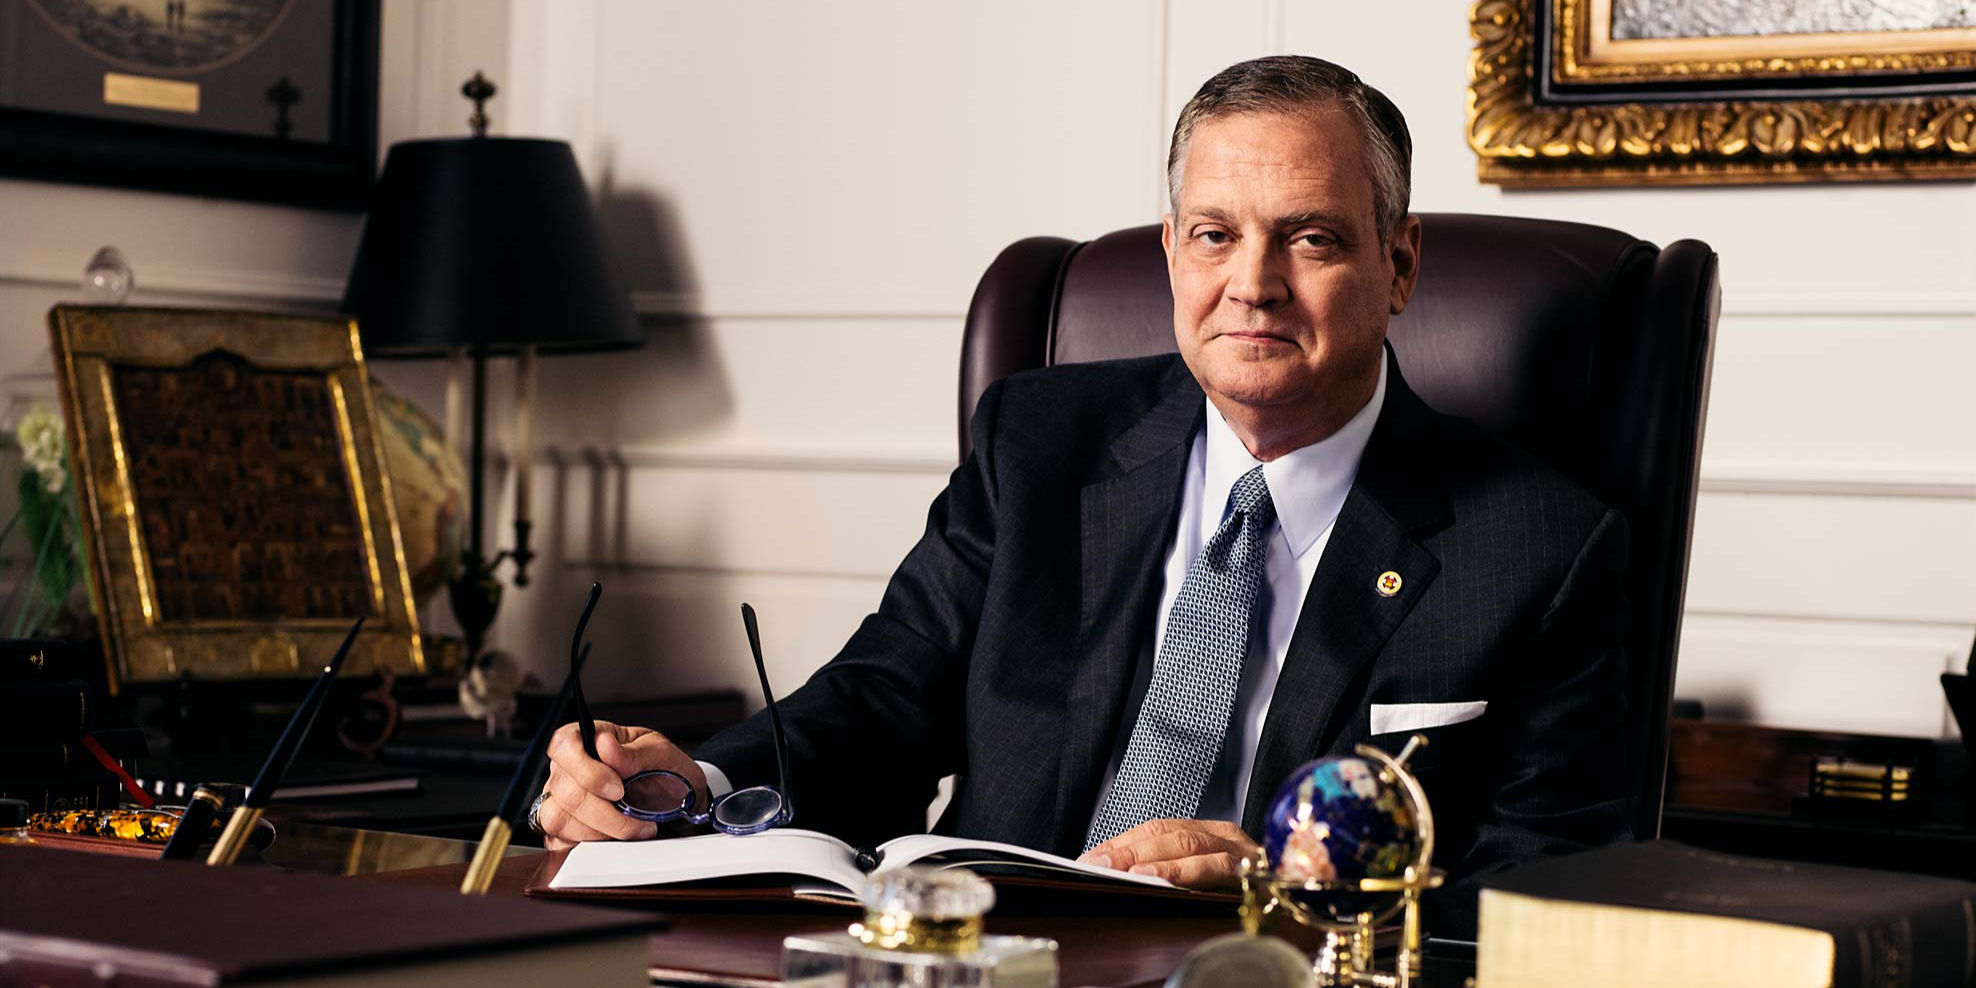 Al Mohler Denounces Homosexual NYC Council Speaker and LGBT Groups for Hostile Treatment of Samaritan's Purse